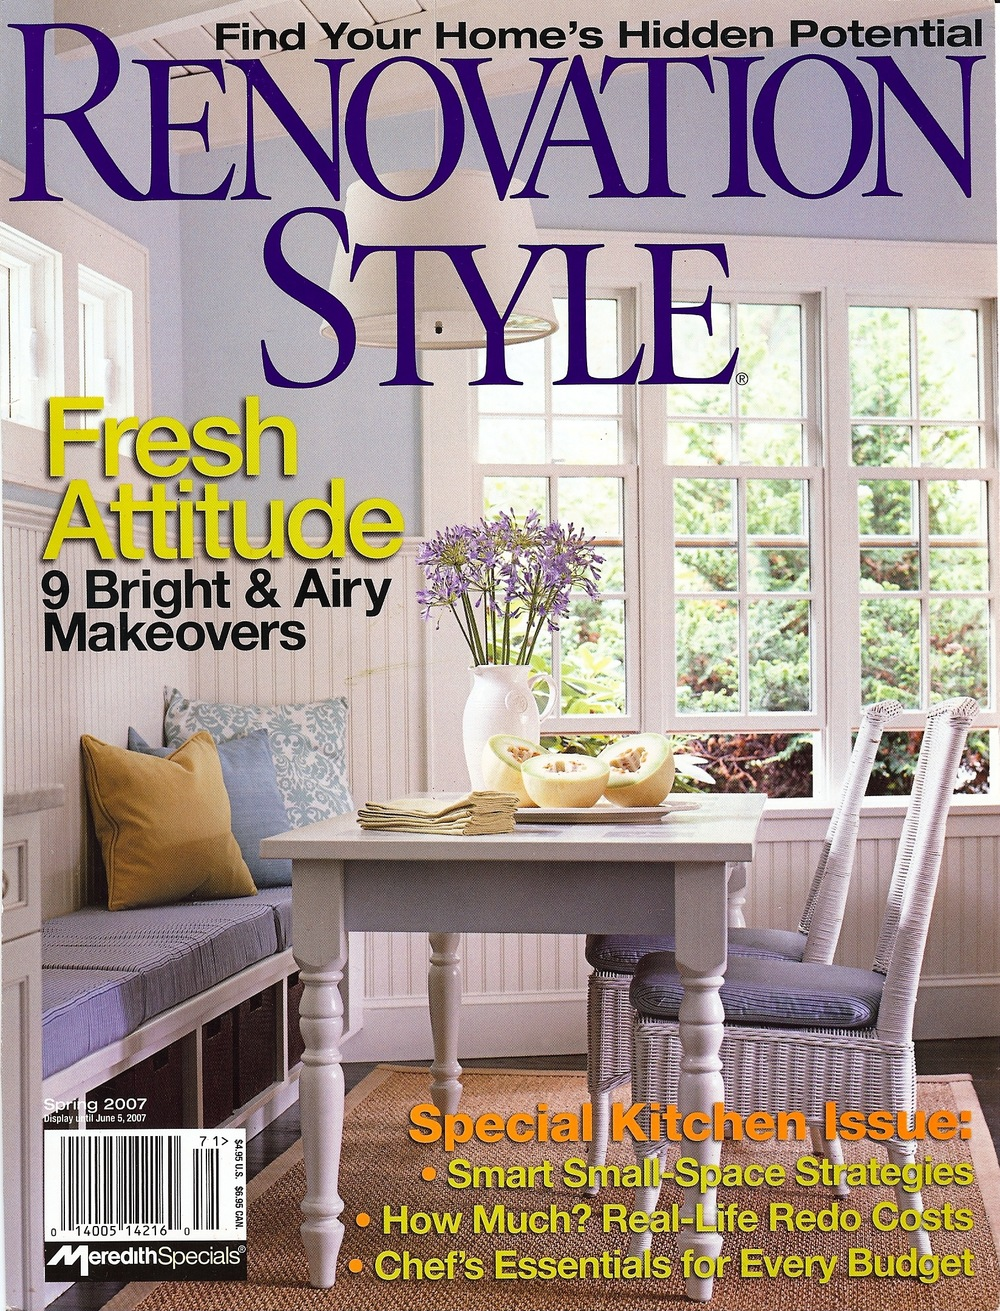 3-Renovation Style Cover #1.jpg